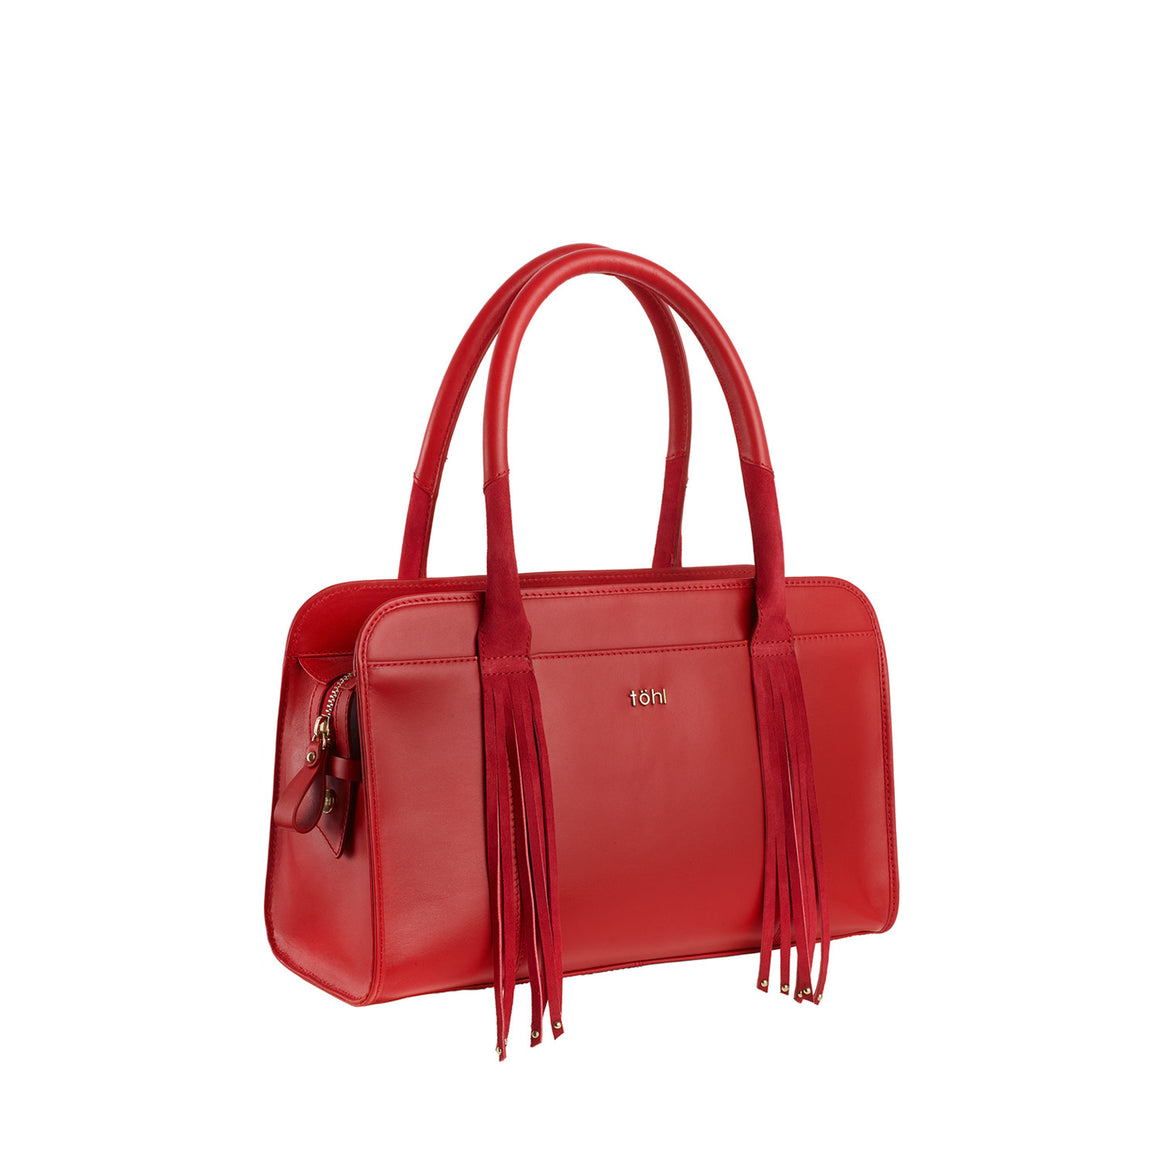 SB 0012 - TOHL TAMARA WOMEN'S DAY BAG - DARK RED